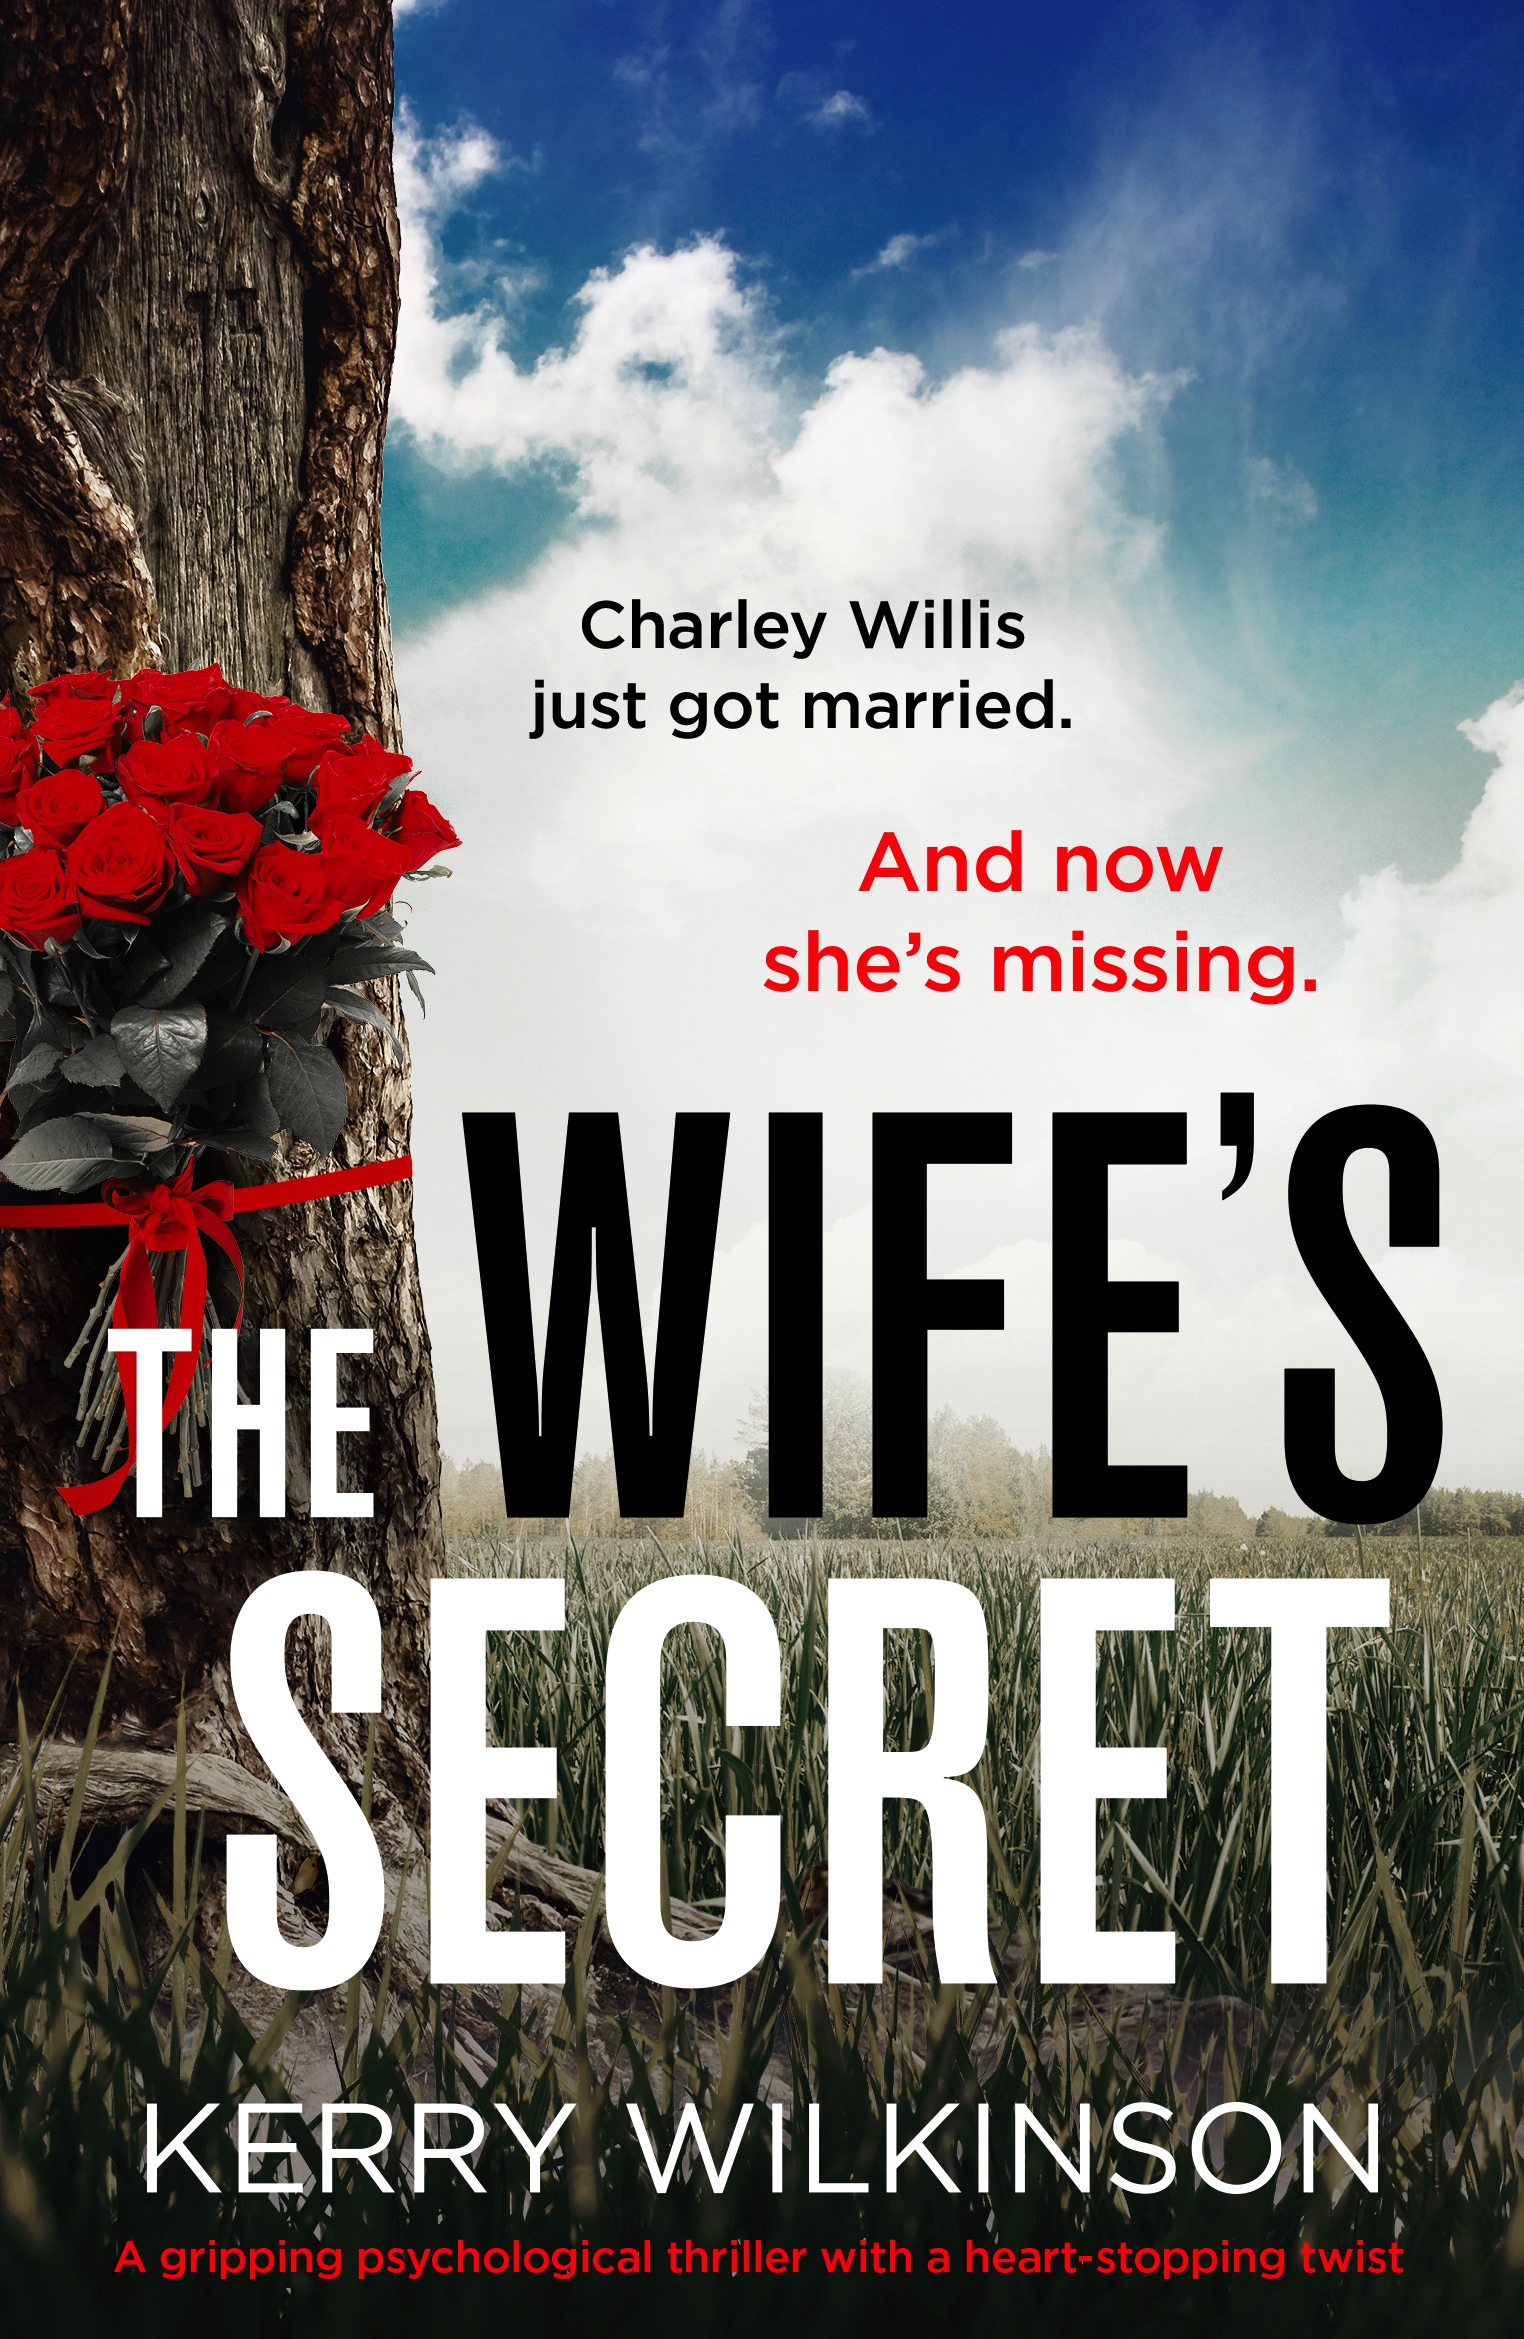 #Excerpt from The Wife's Secret by Kerry Wilkinson @kerrywk @nholten40 @bookouture